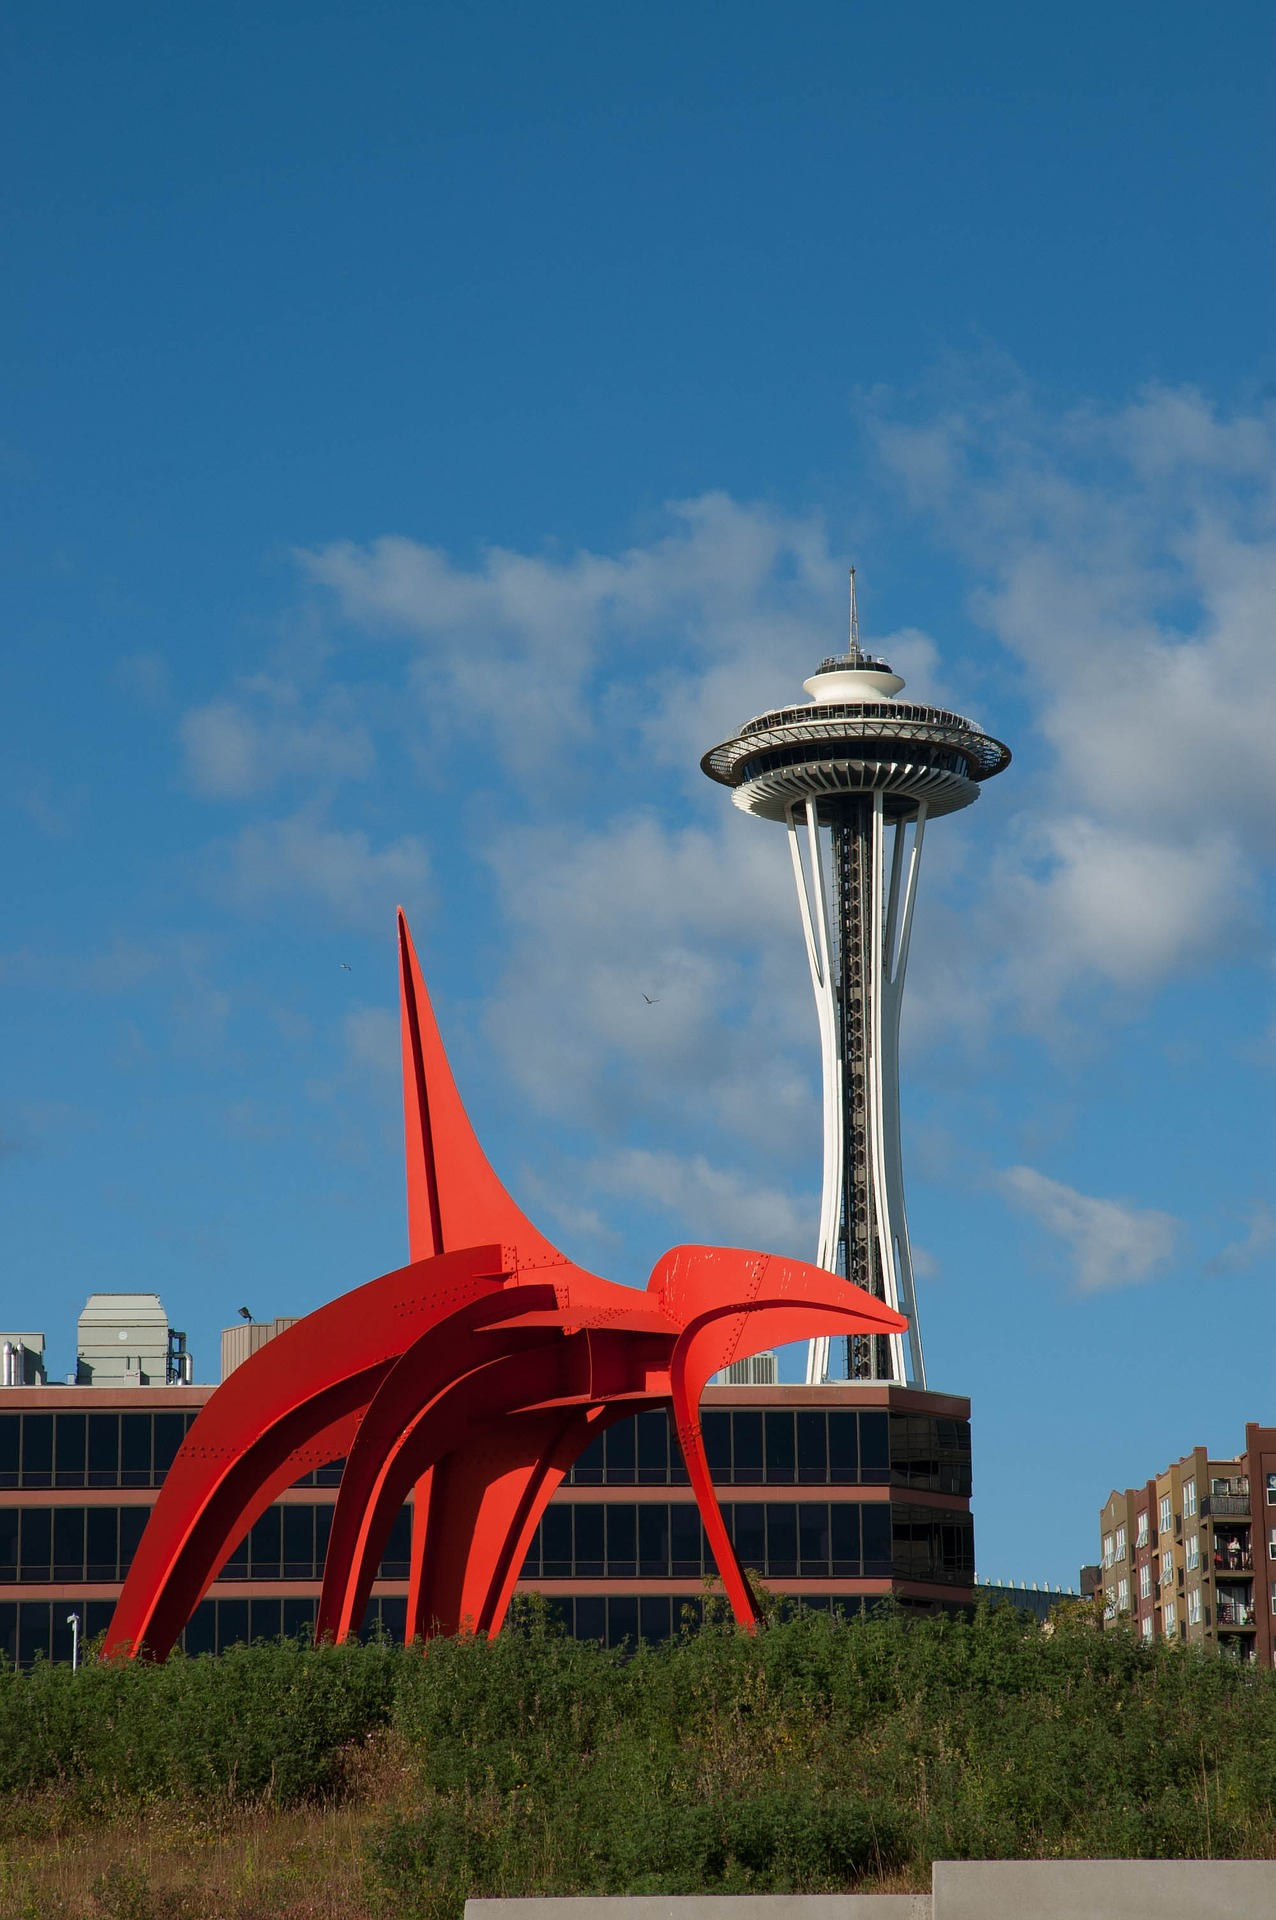 The Eagle in the Olympic Sculpture Park, Seattle, Washington